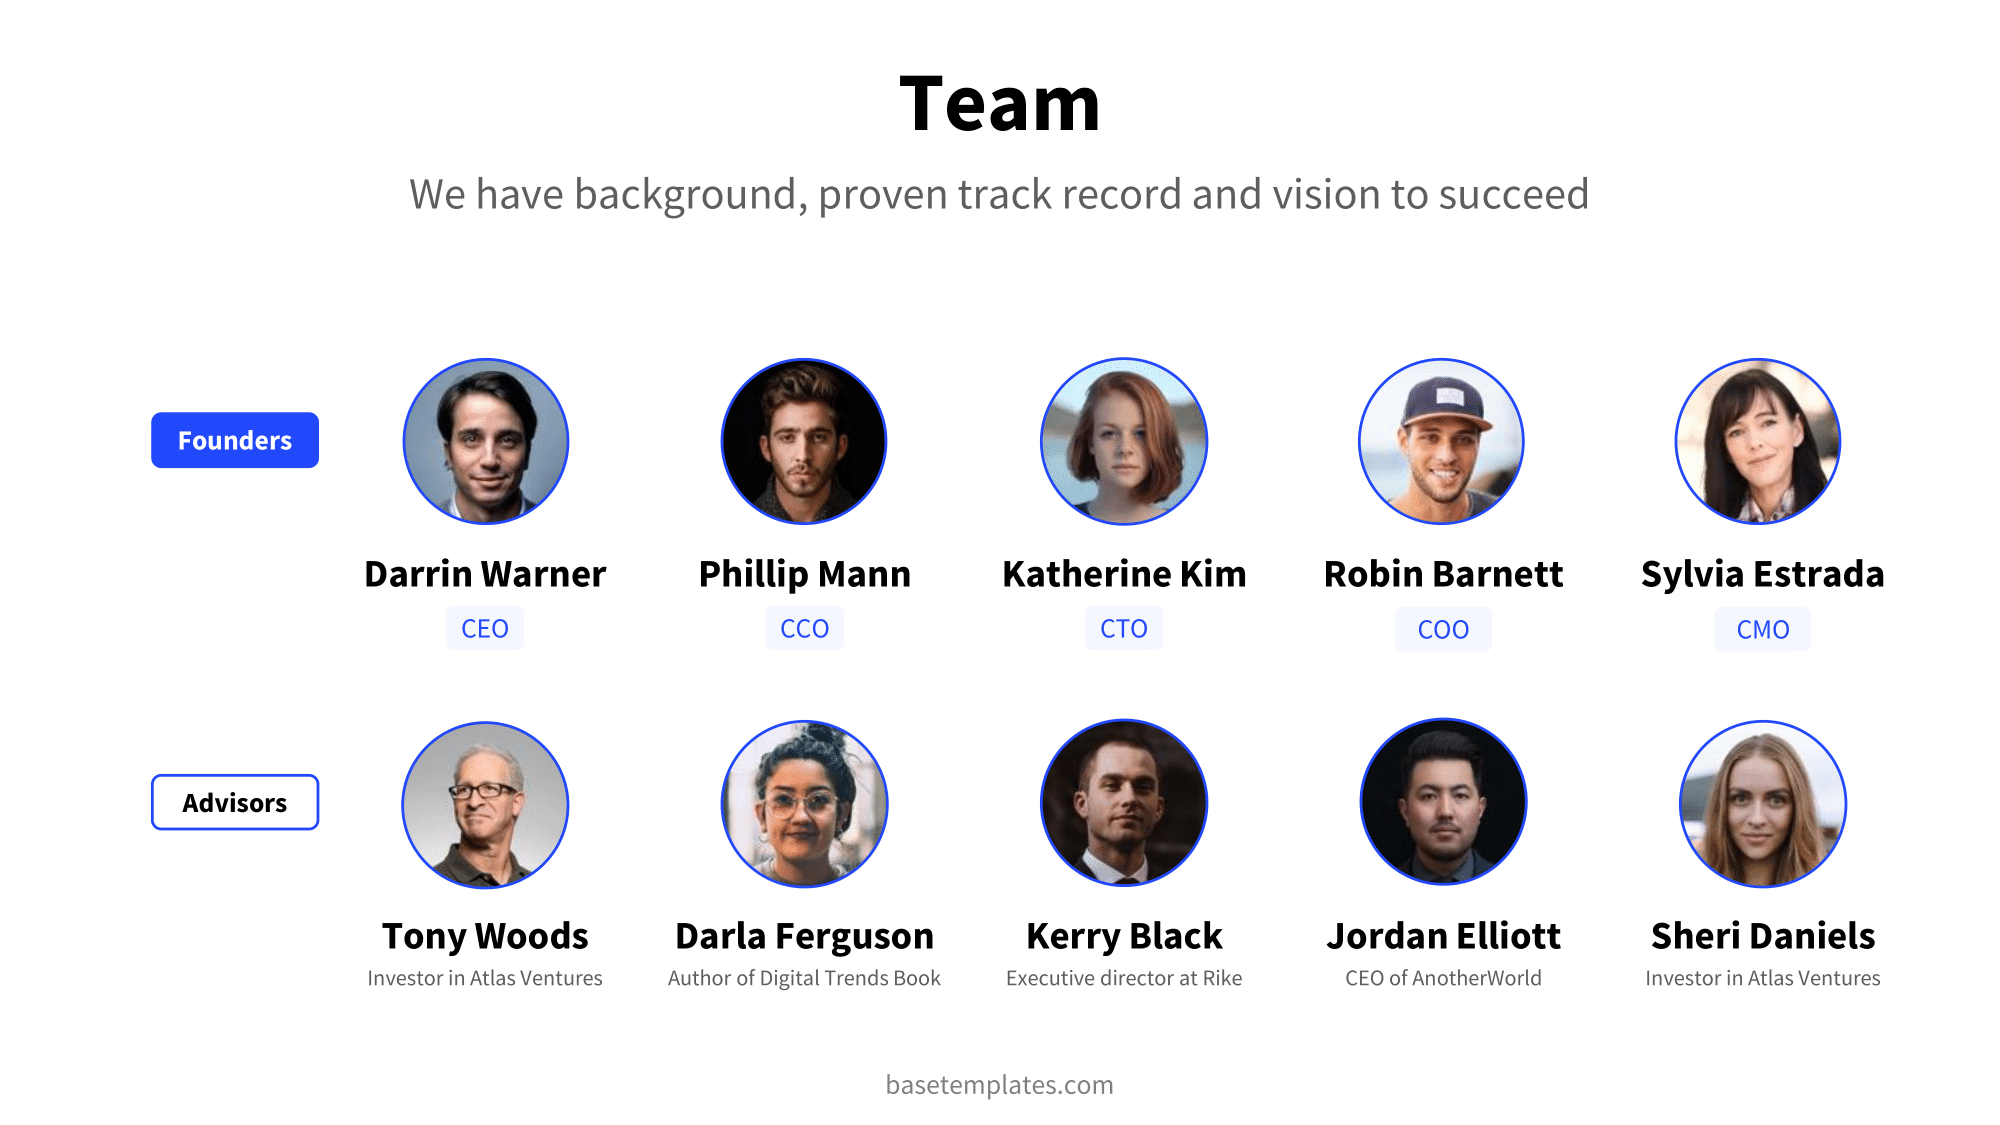 Team slide with headshots and information of founders and advisors